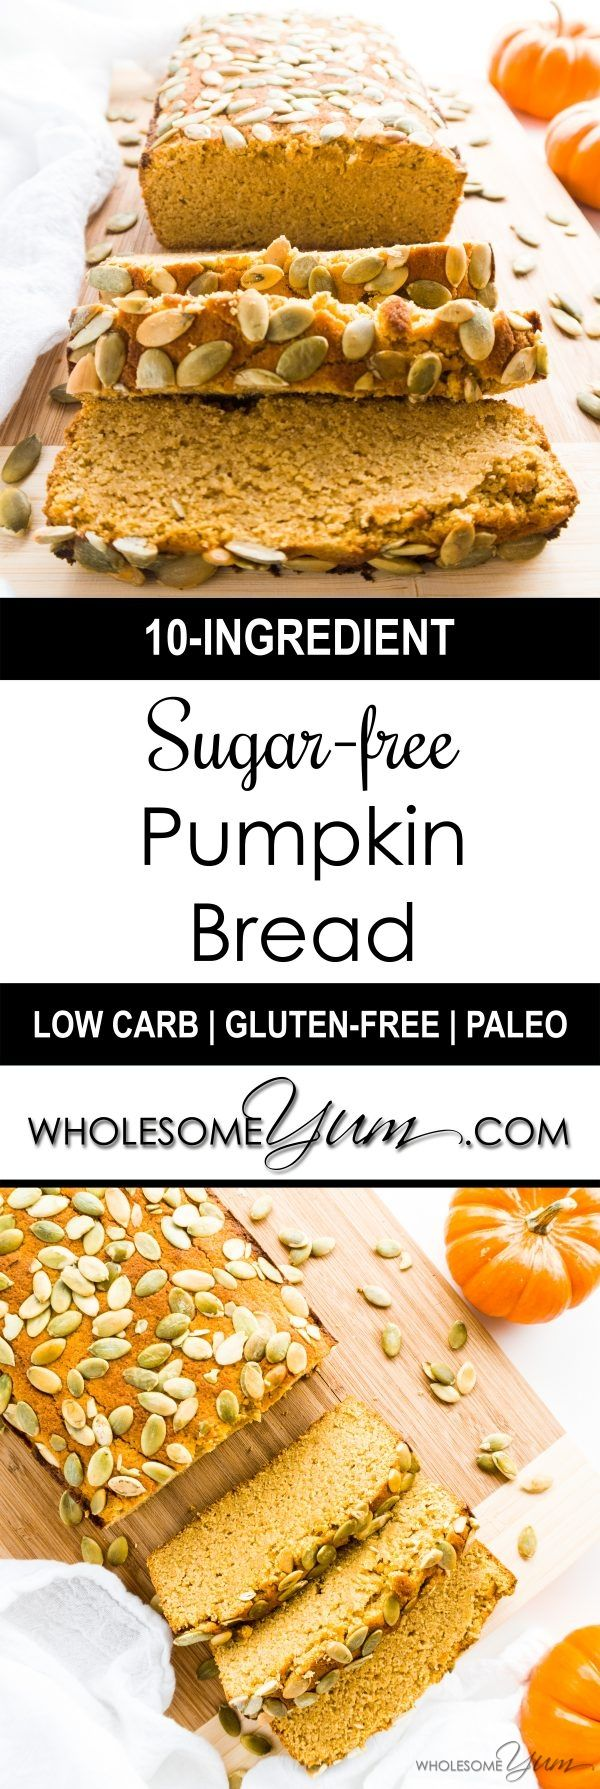 free Pumpkin Bread (Low Carb, Paleo) - This ultra moist pumpkin bread ...